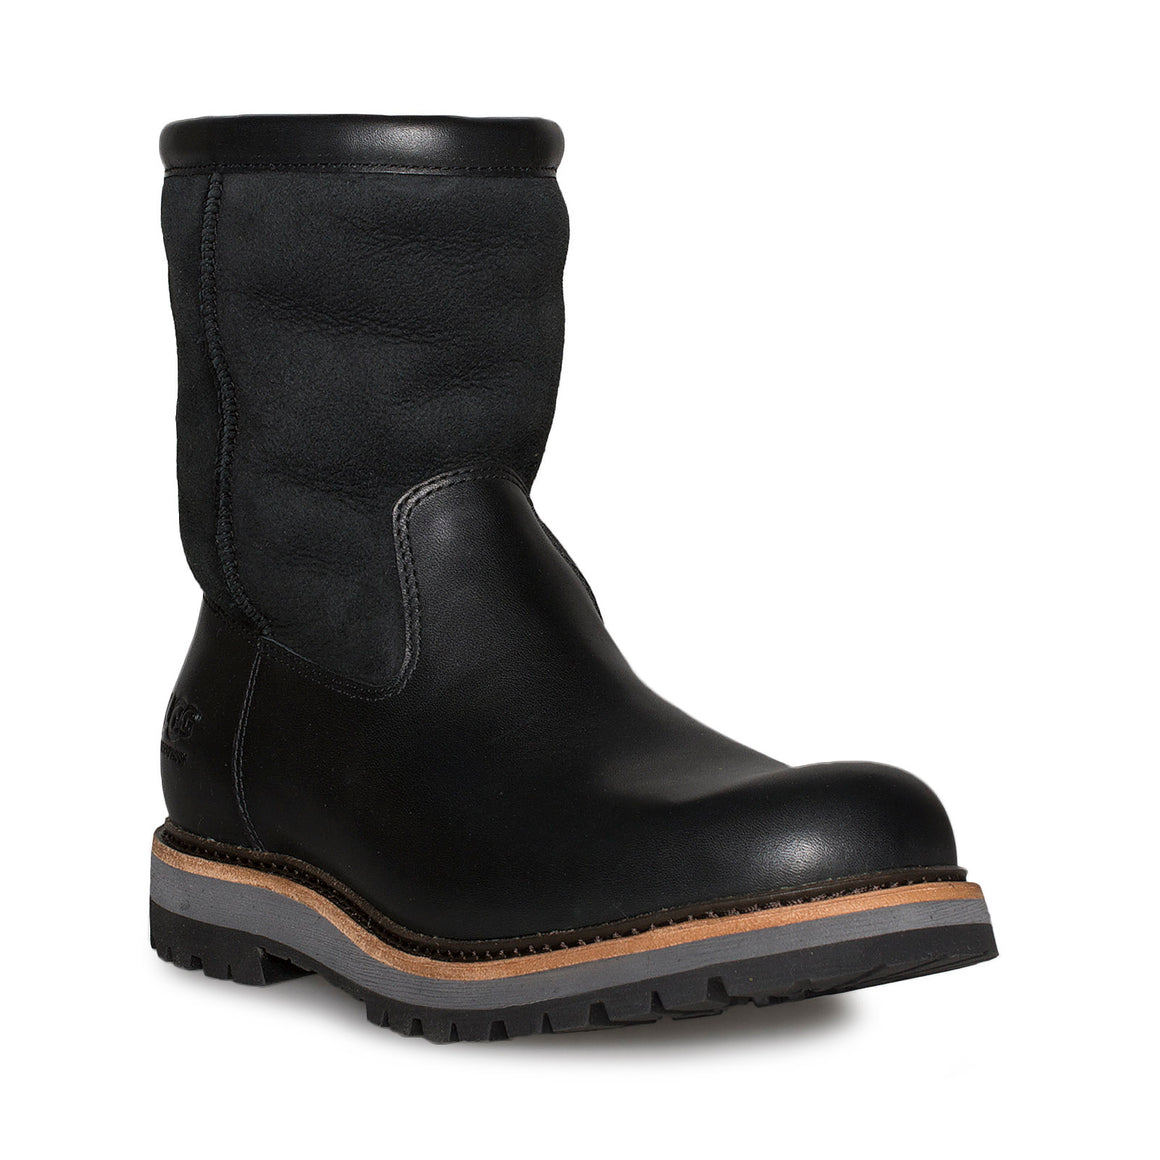 UGG Polson Black Boots - Men's